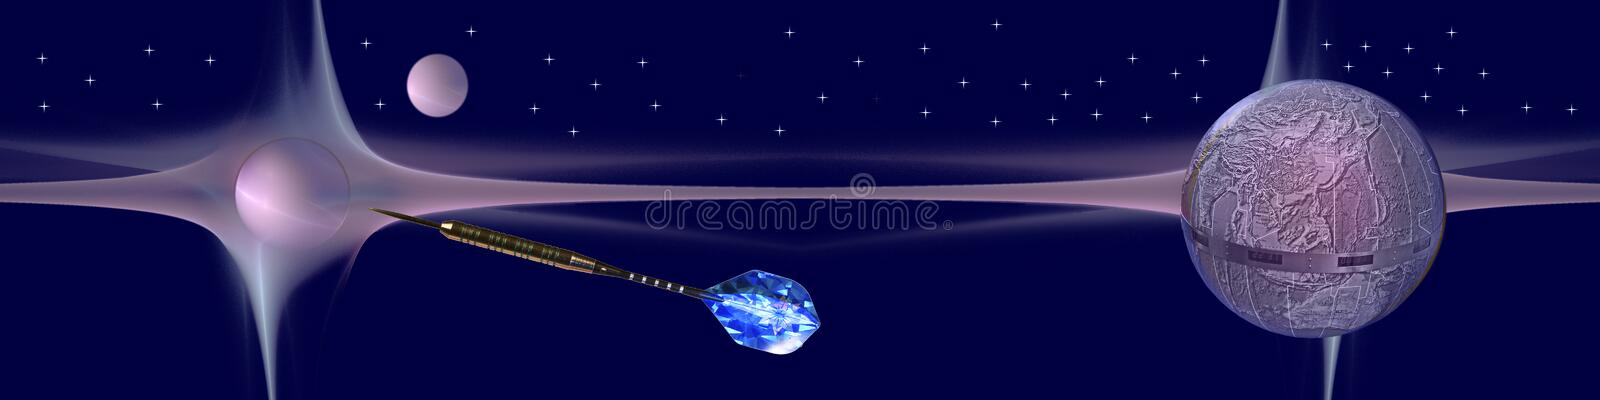 Header Hit your targets. This banner / header shows planets and our earth floating in space. The arrow is on its way to hit a target royalty free illustration